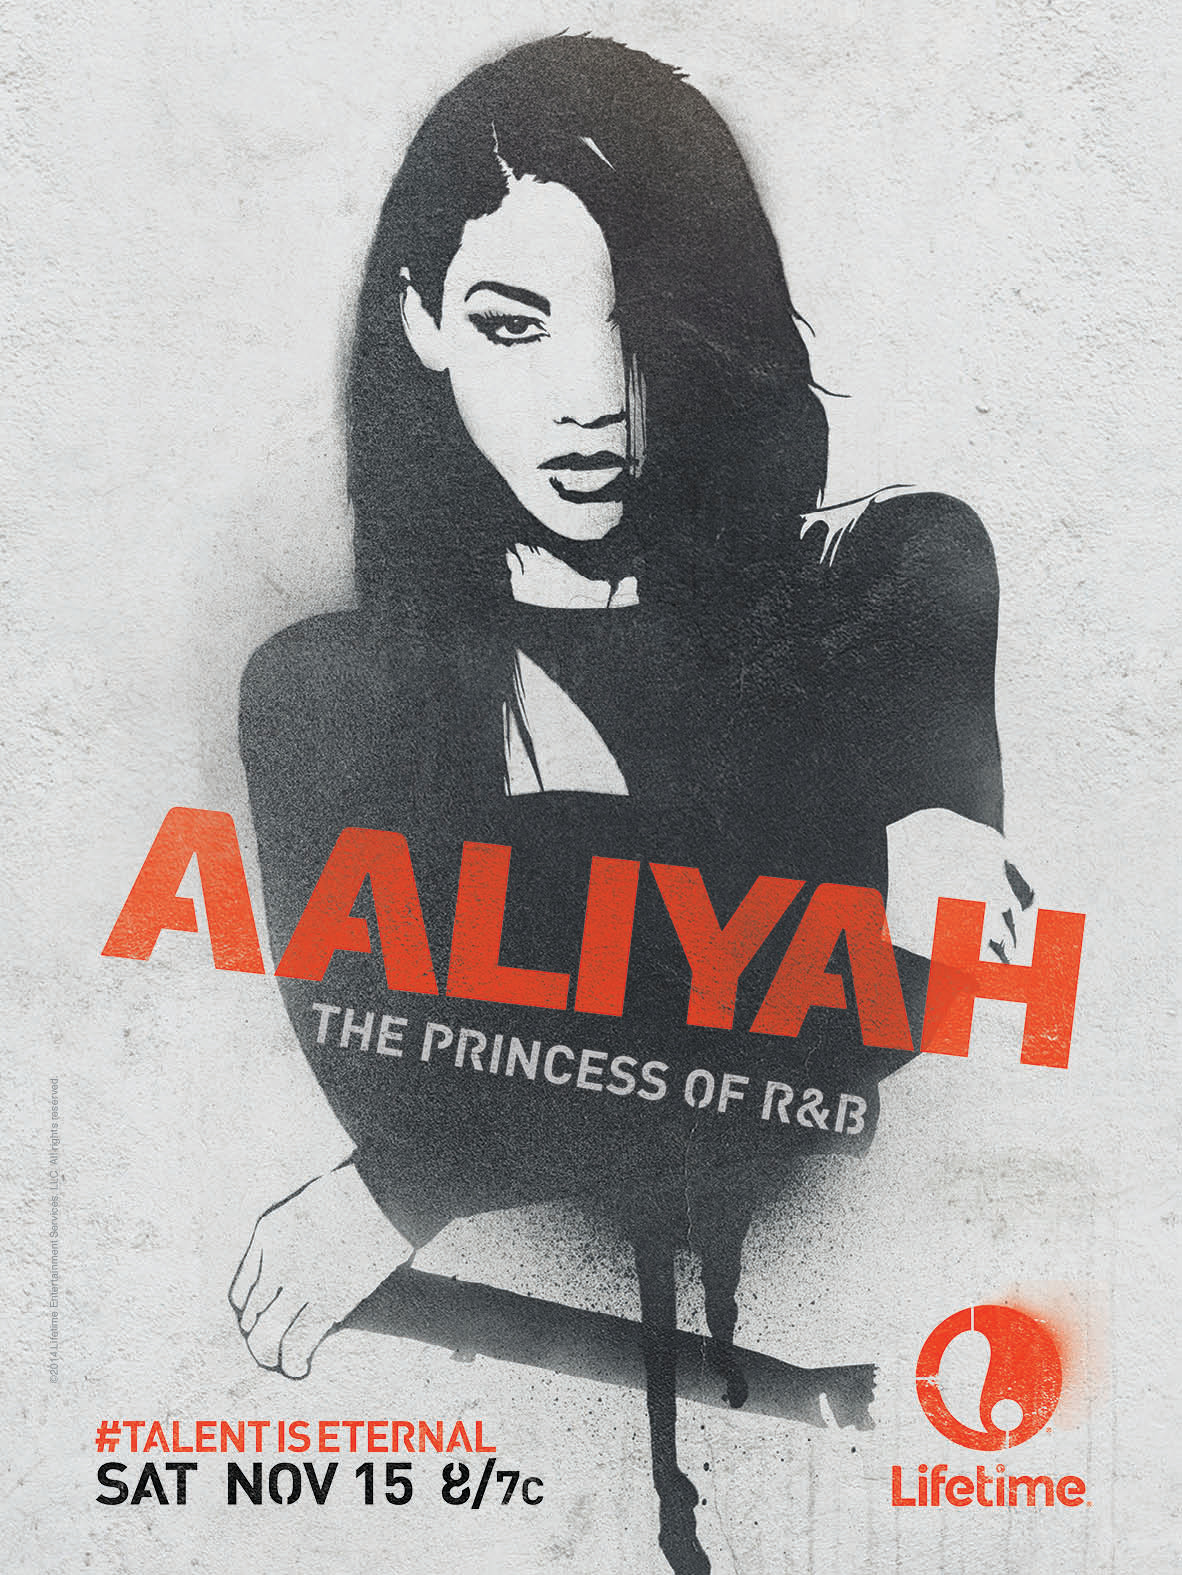 AALIYAH THE PRINCESS OF R&B